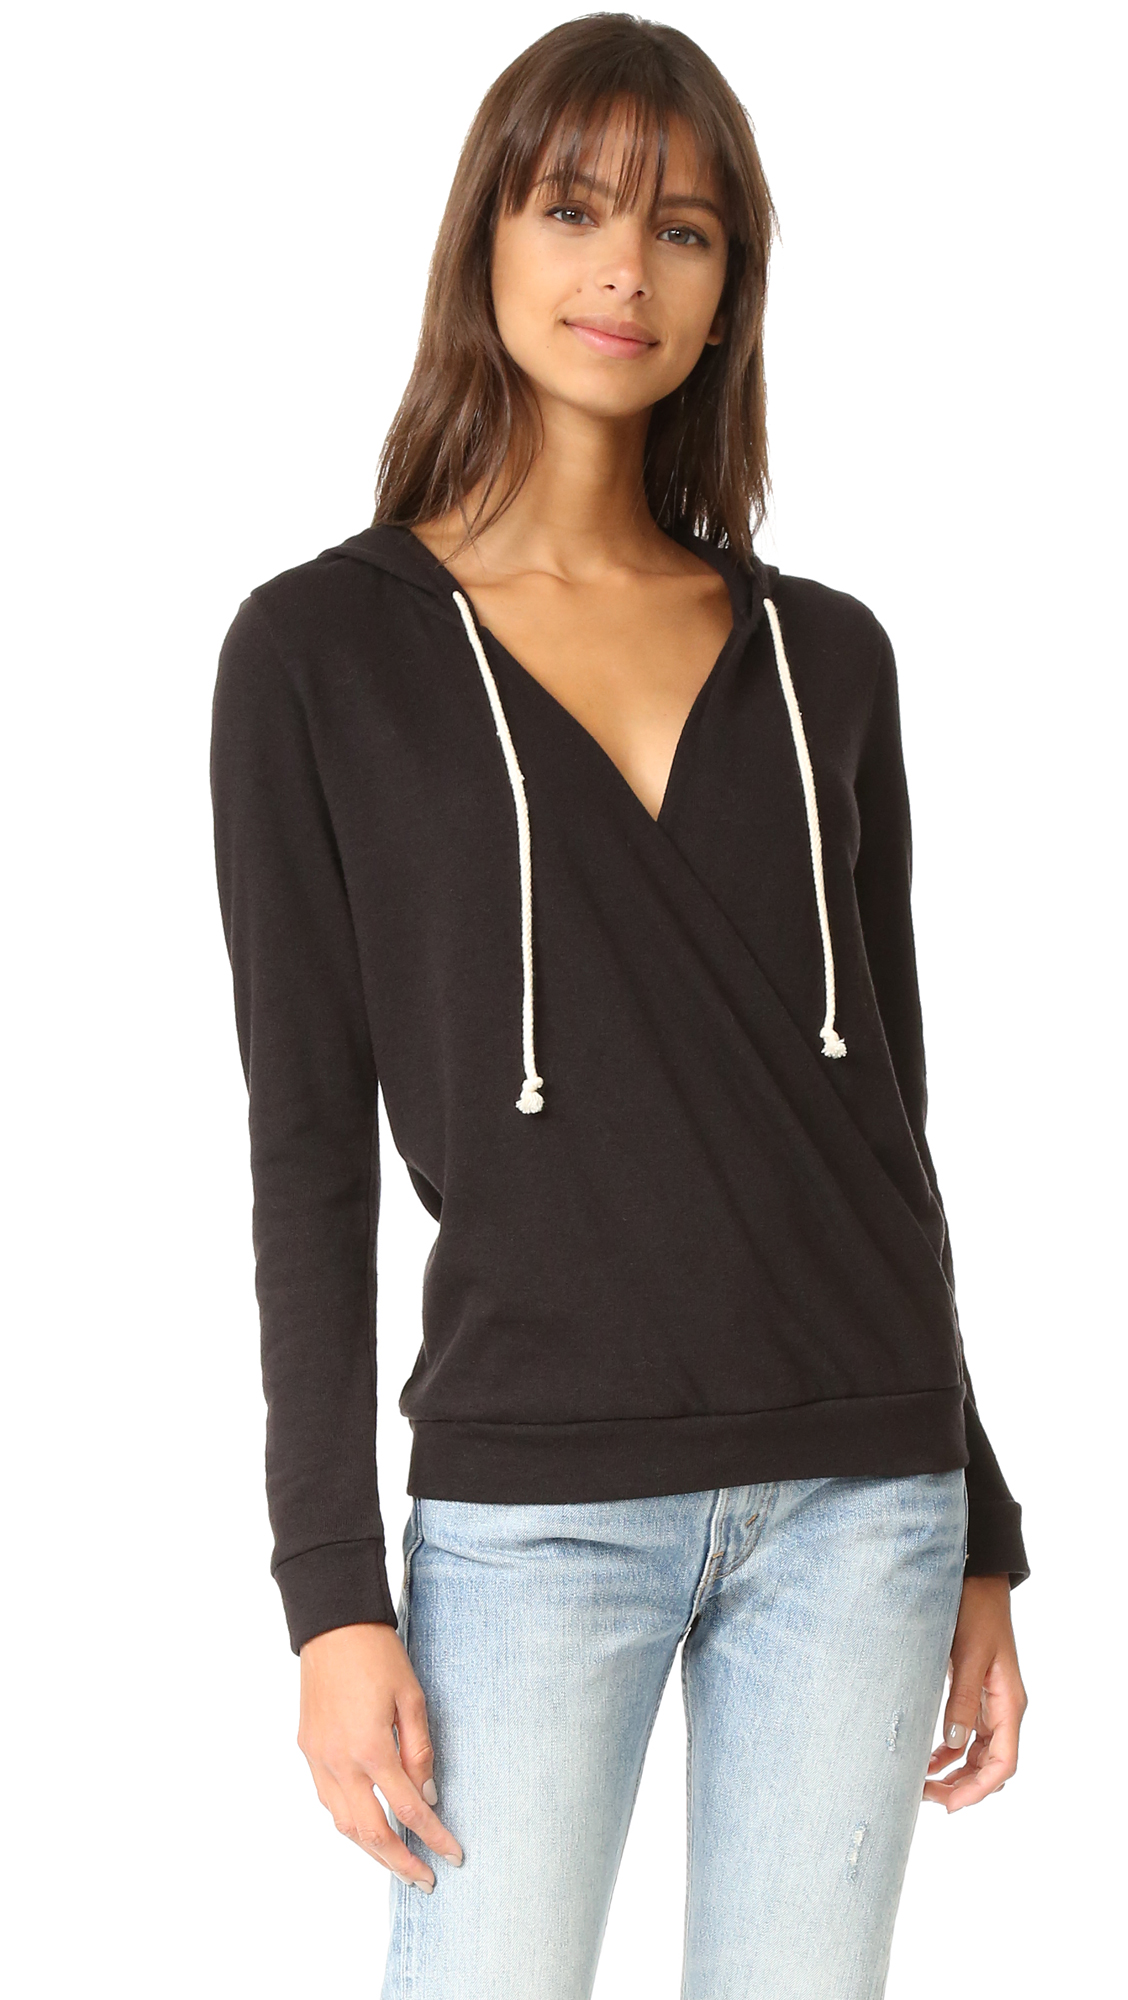 Lanston Surplice Hoodie - Black at Shopbop